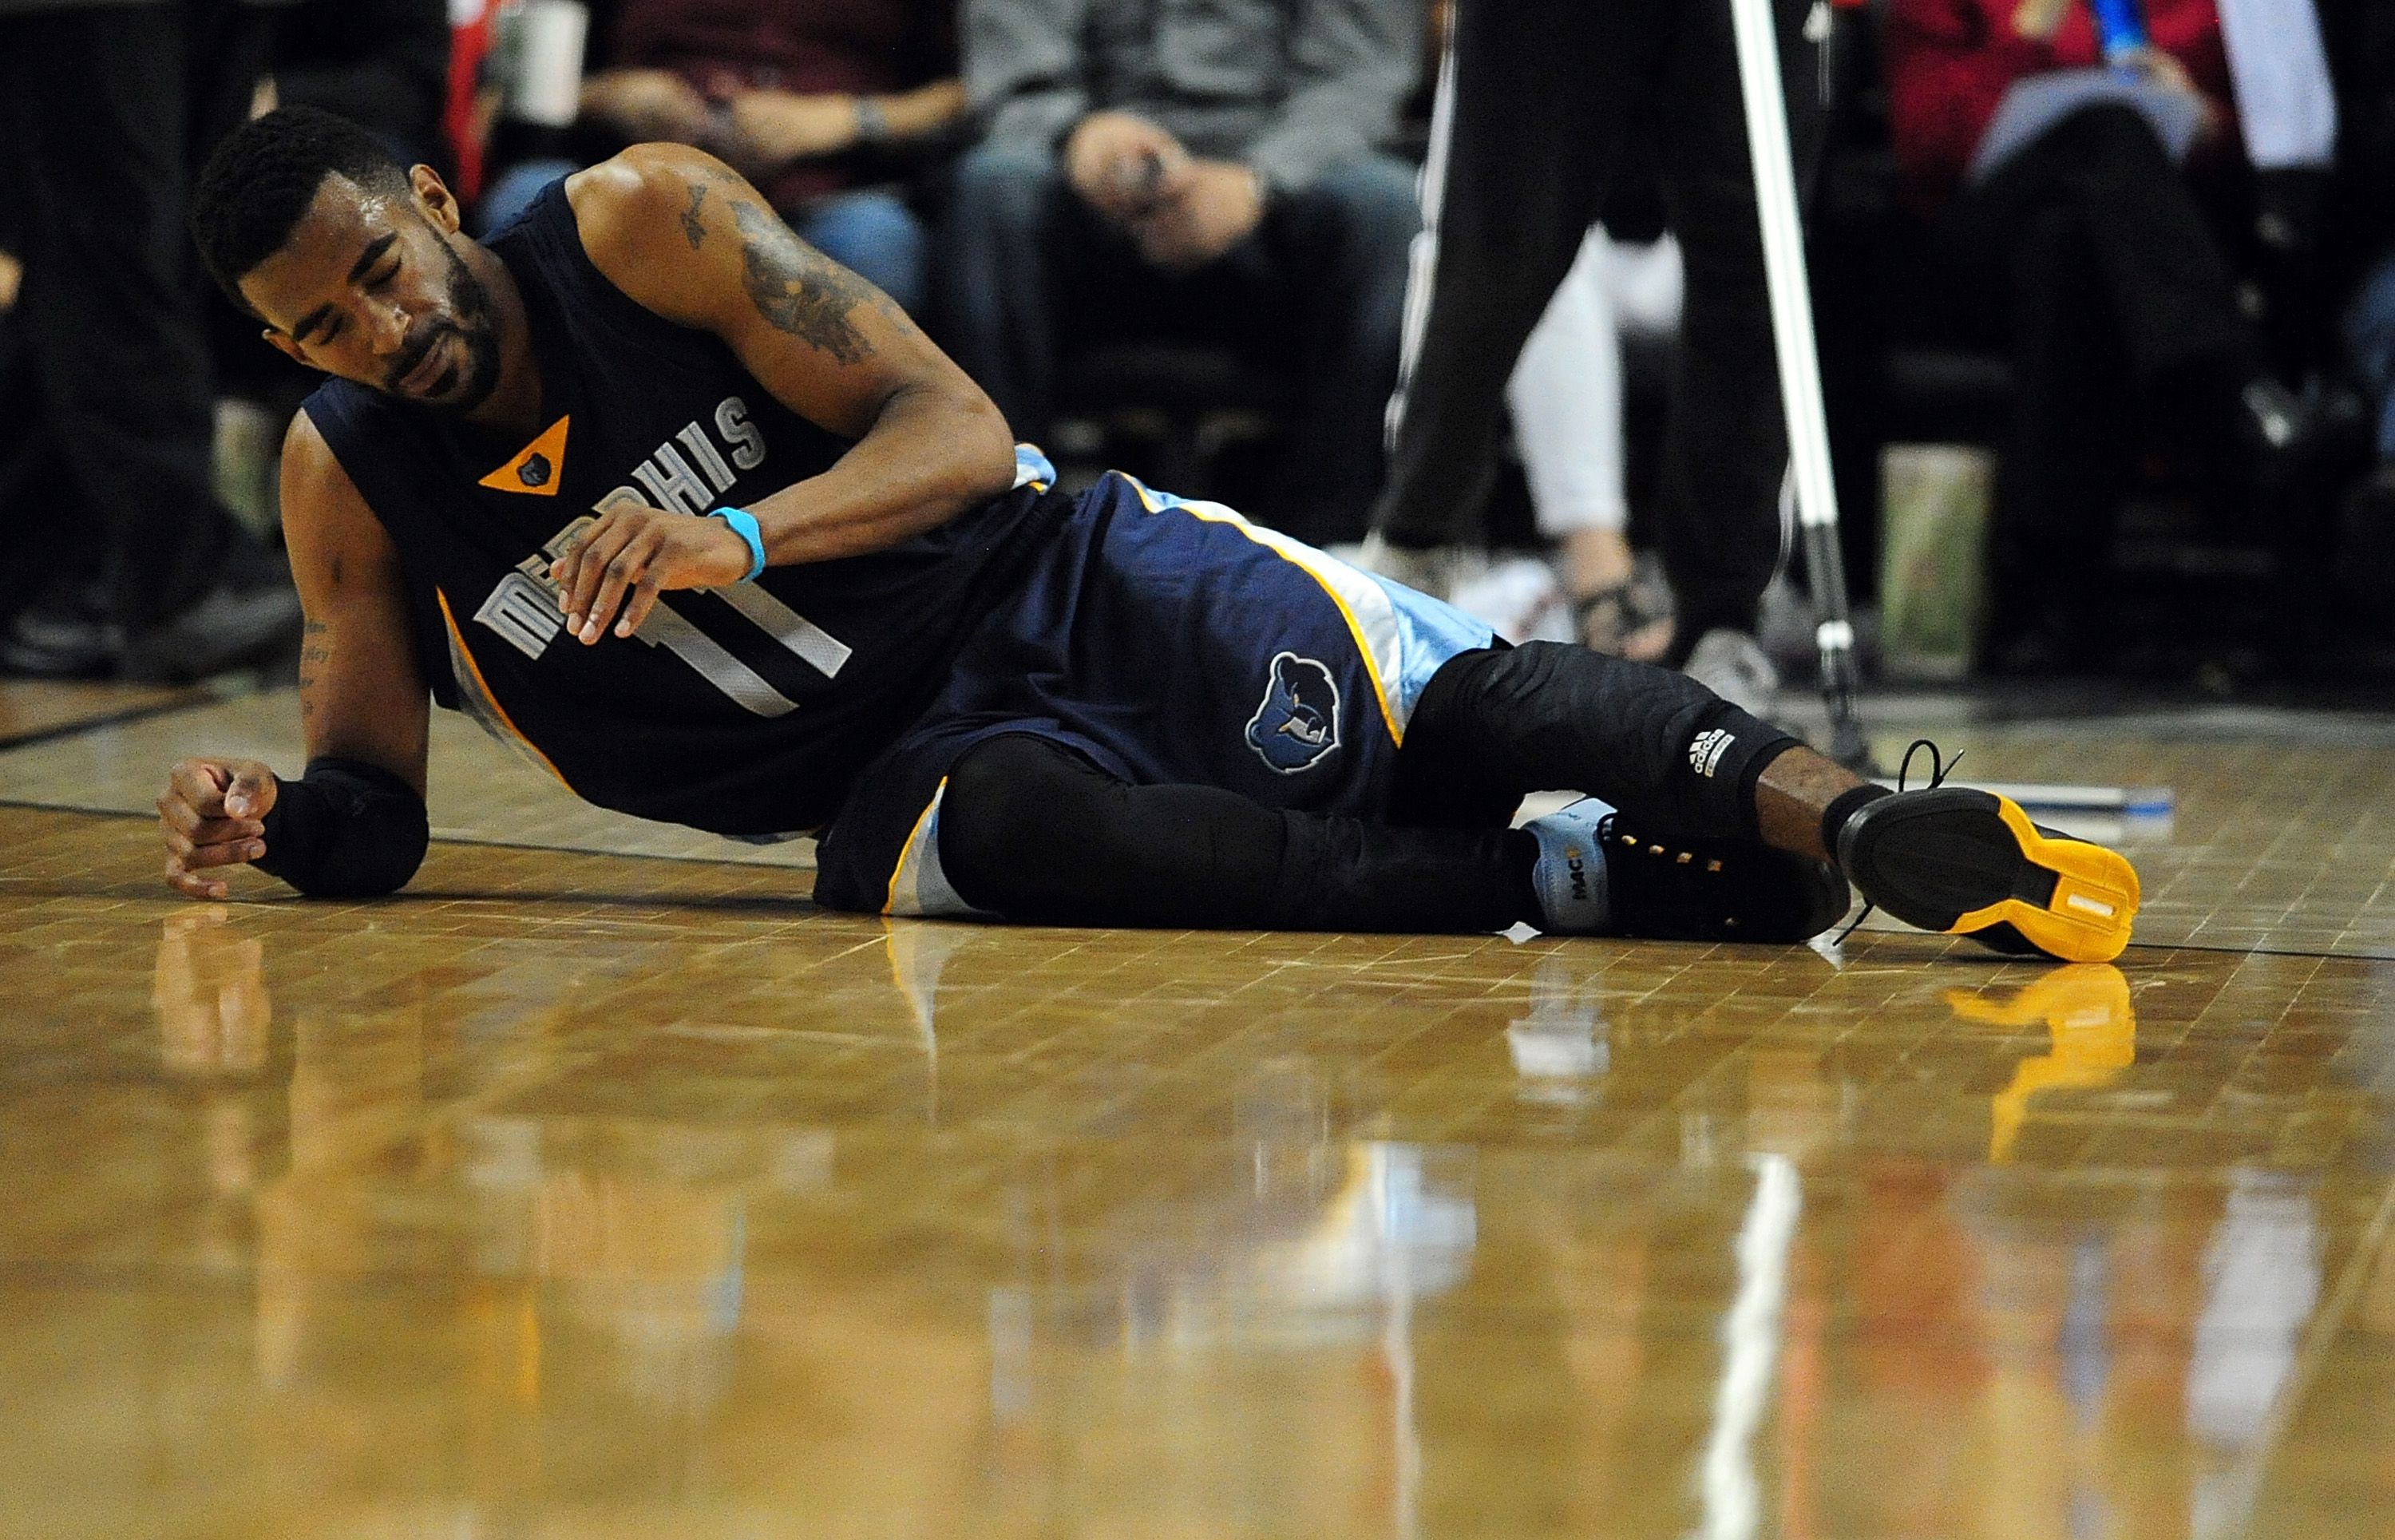 PORTLAND, OR - APRIL 25: Mike Conley #11 of the Memphis Grizzlies rolls over on the court after being injured during the third quarter in Game Three of the Western Conference quarterfinals against the Portland Trail Blazers during the 2015 NBA Playoffs at